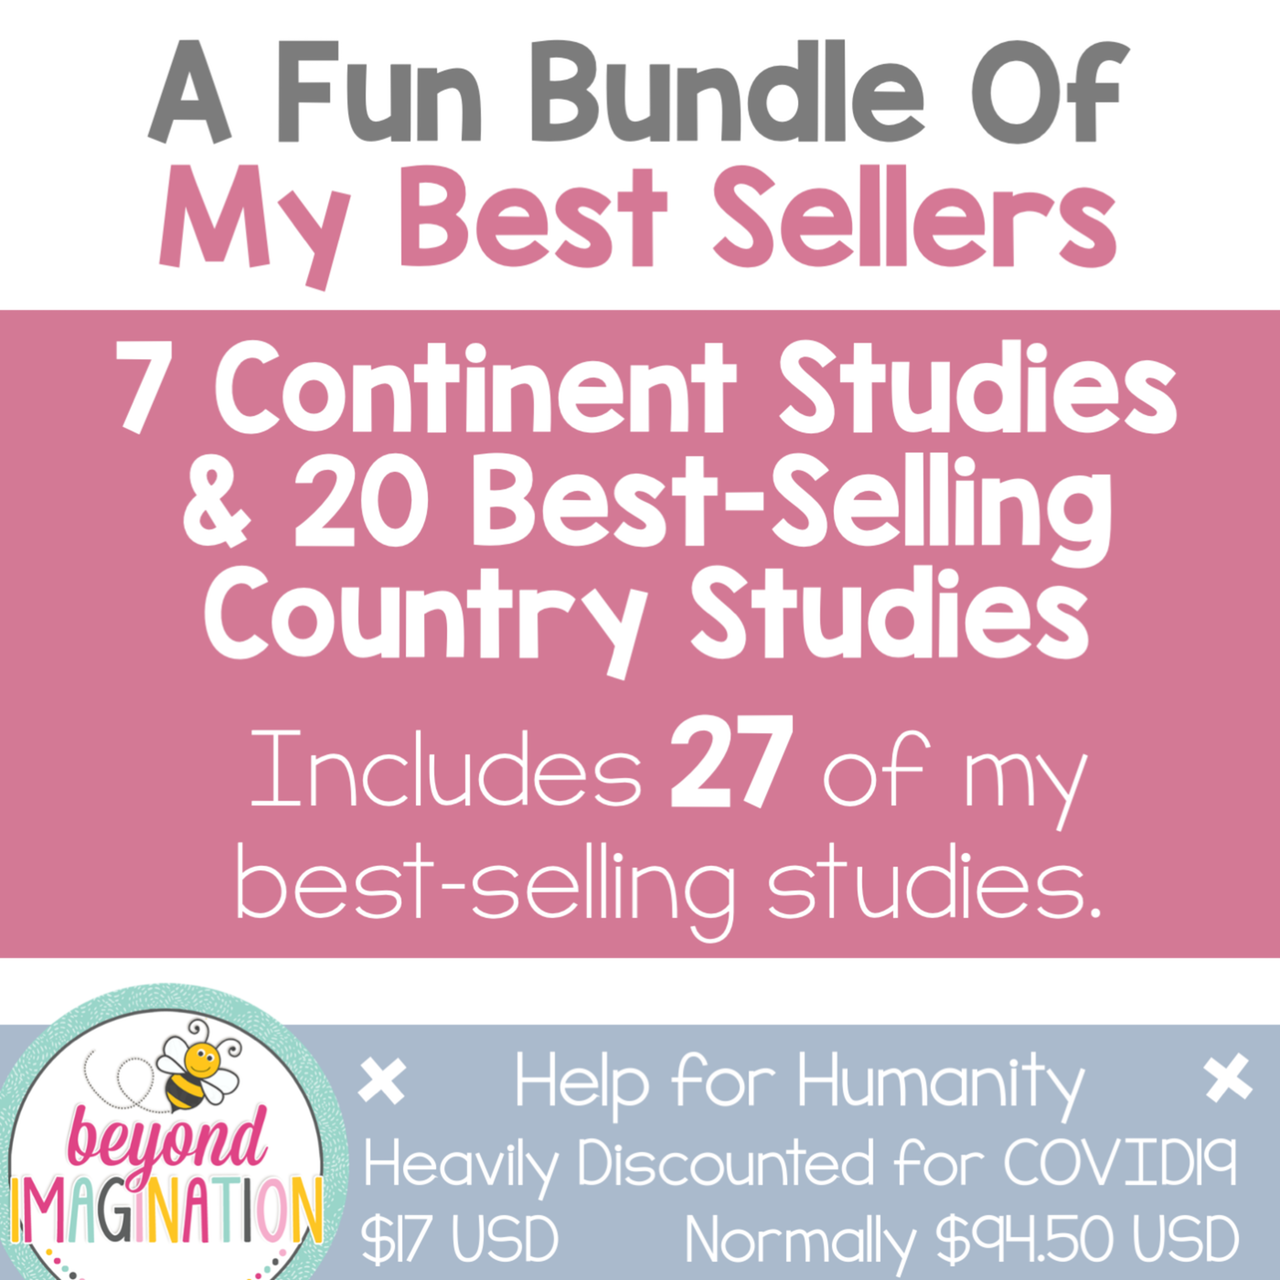 Continent Study Bundle + 20 Best-Selling Country Studies Help for Humanity COVID19